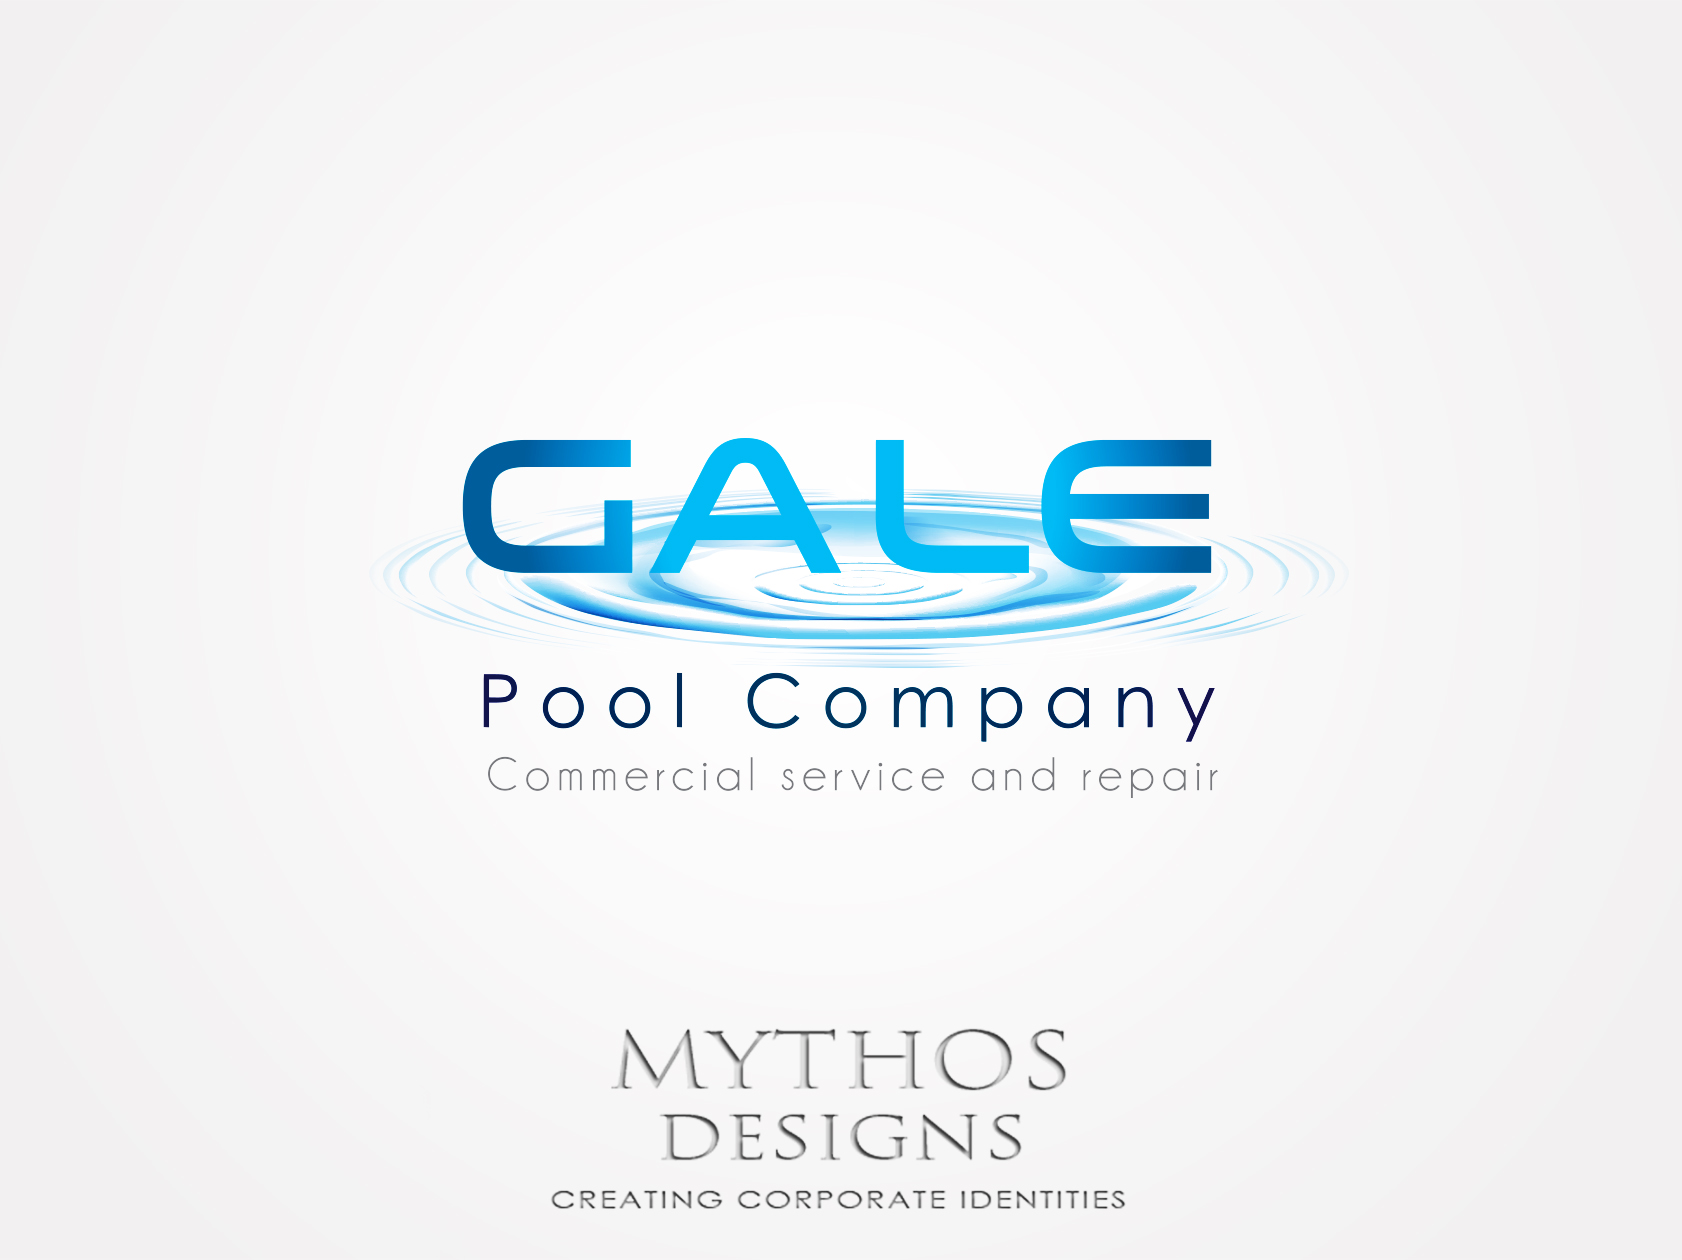 Logo design contests imaginative logo design for gale pool company design no 153 by - Swimming pool logo design ...